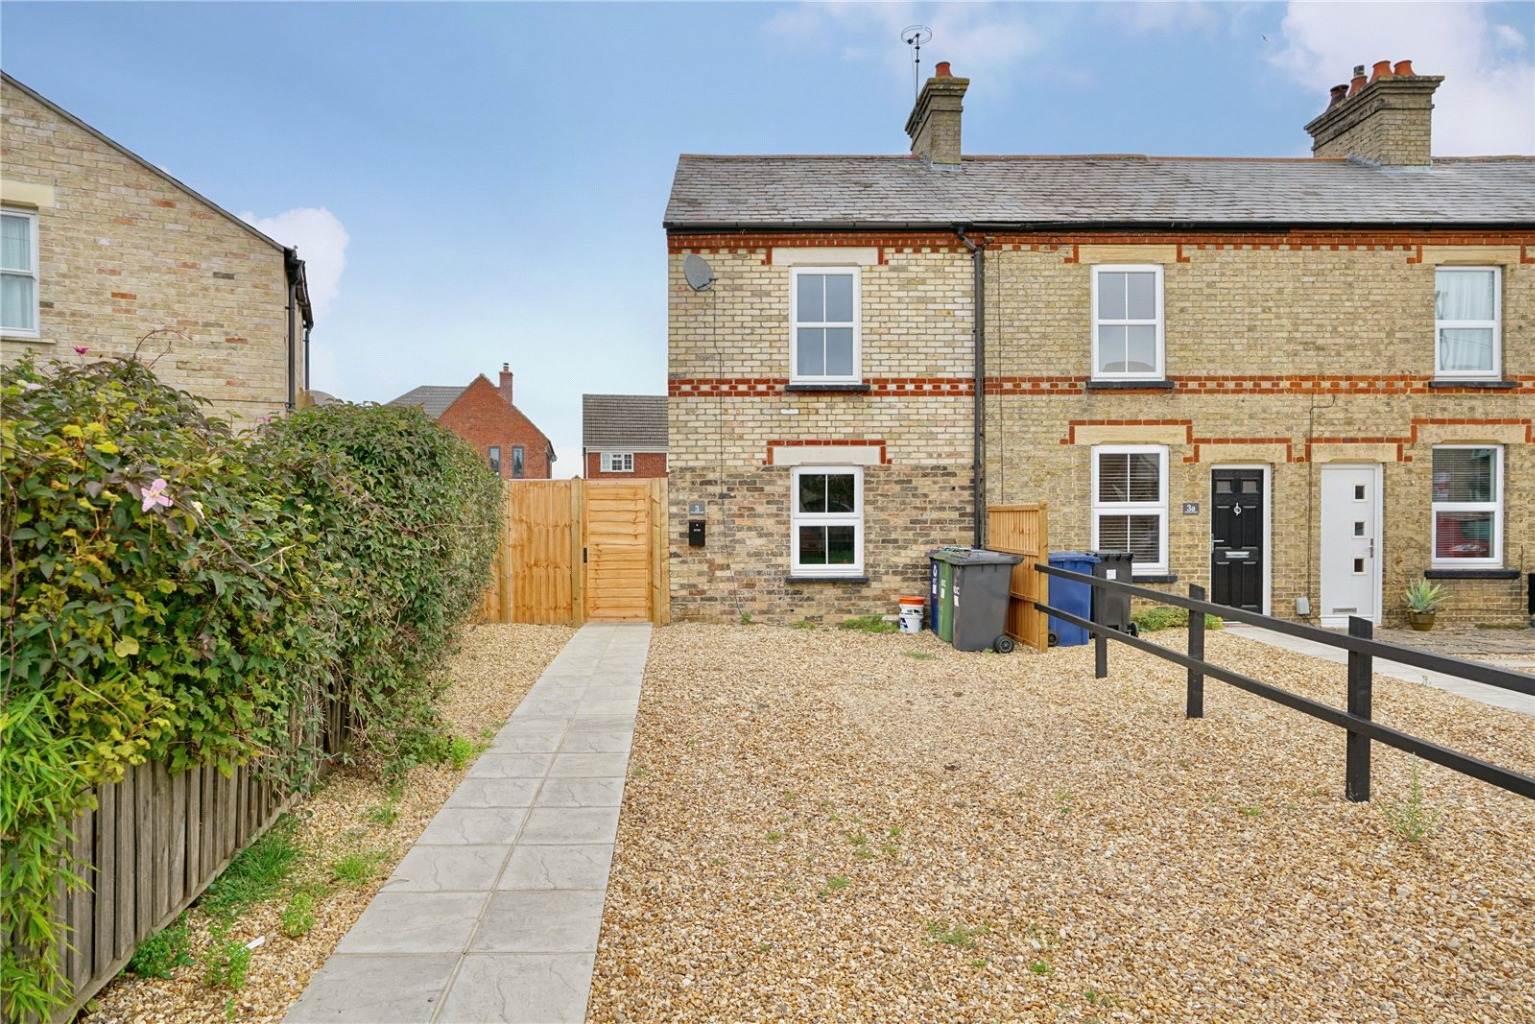 2 bed end of terrace house for sale in Crosshall Road, St. Neots  - Property Image 1